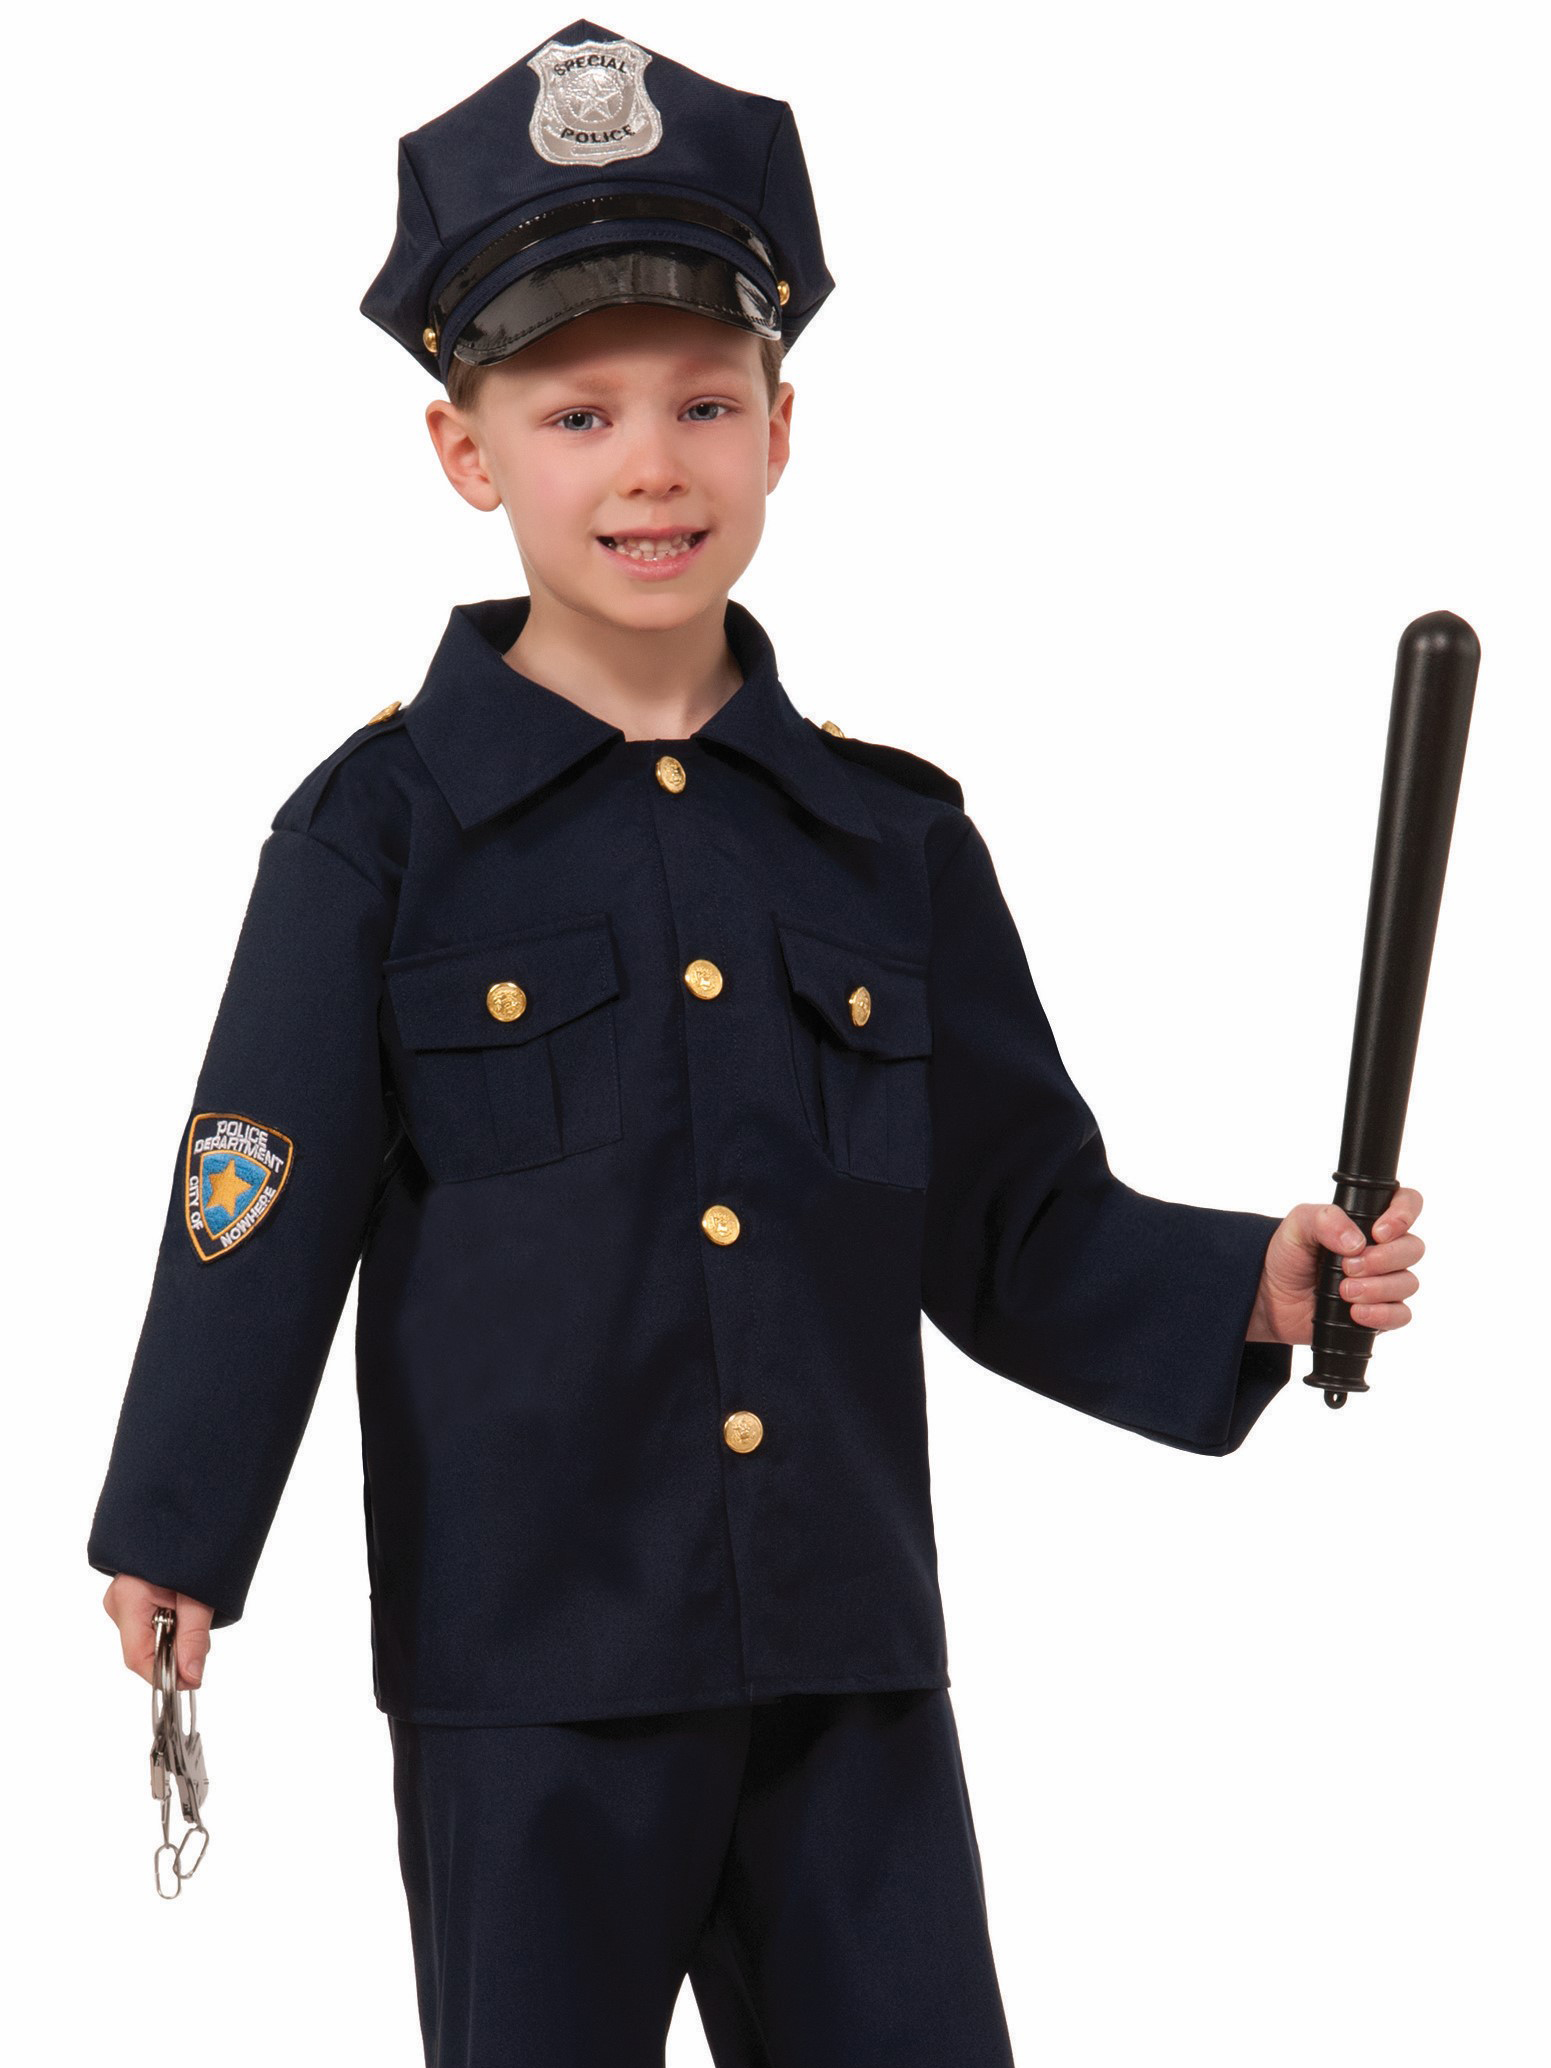 Little Boy in a police officer uniform